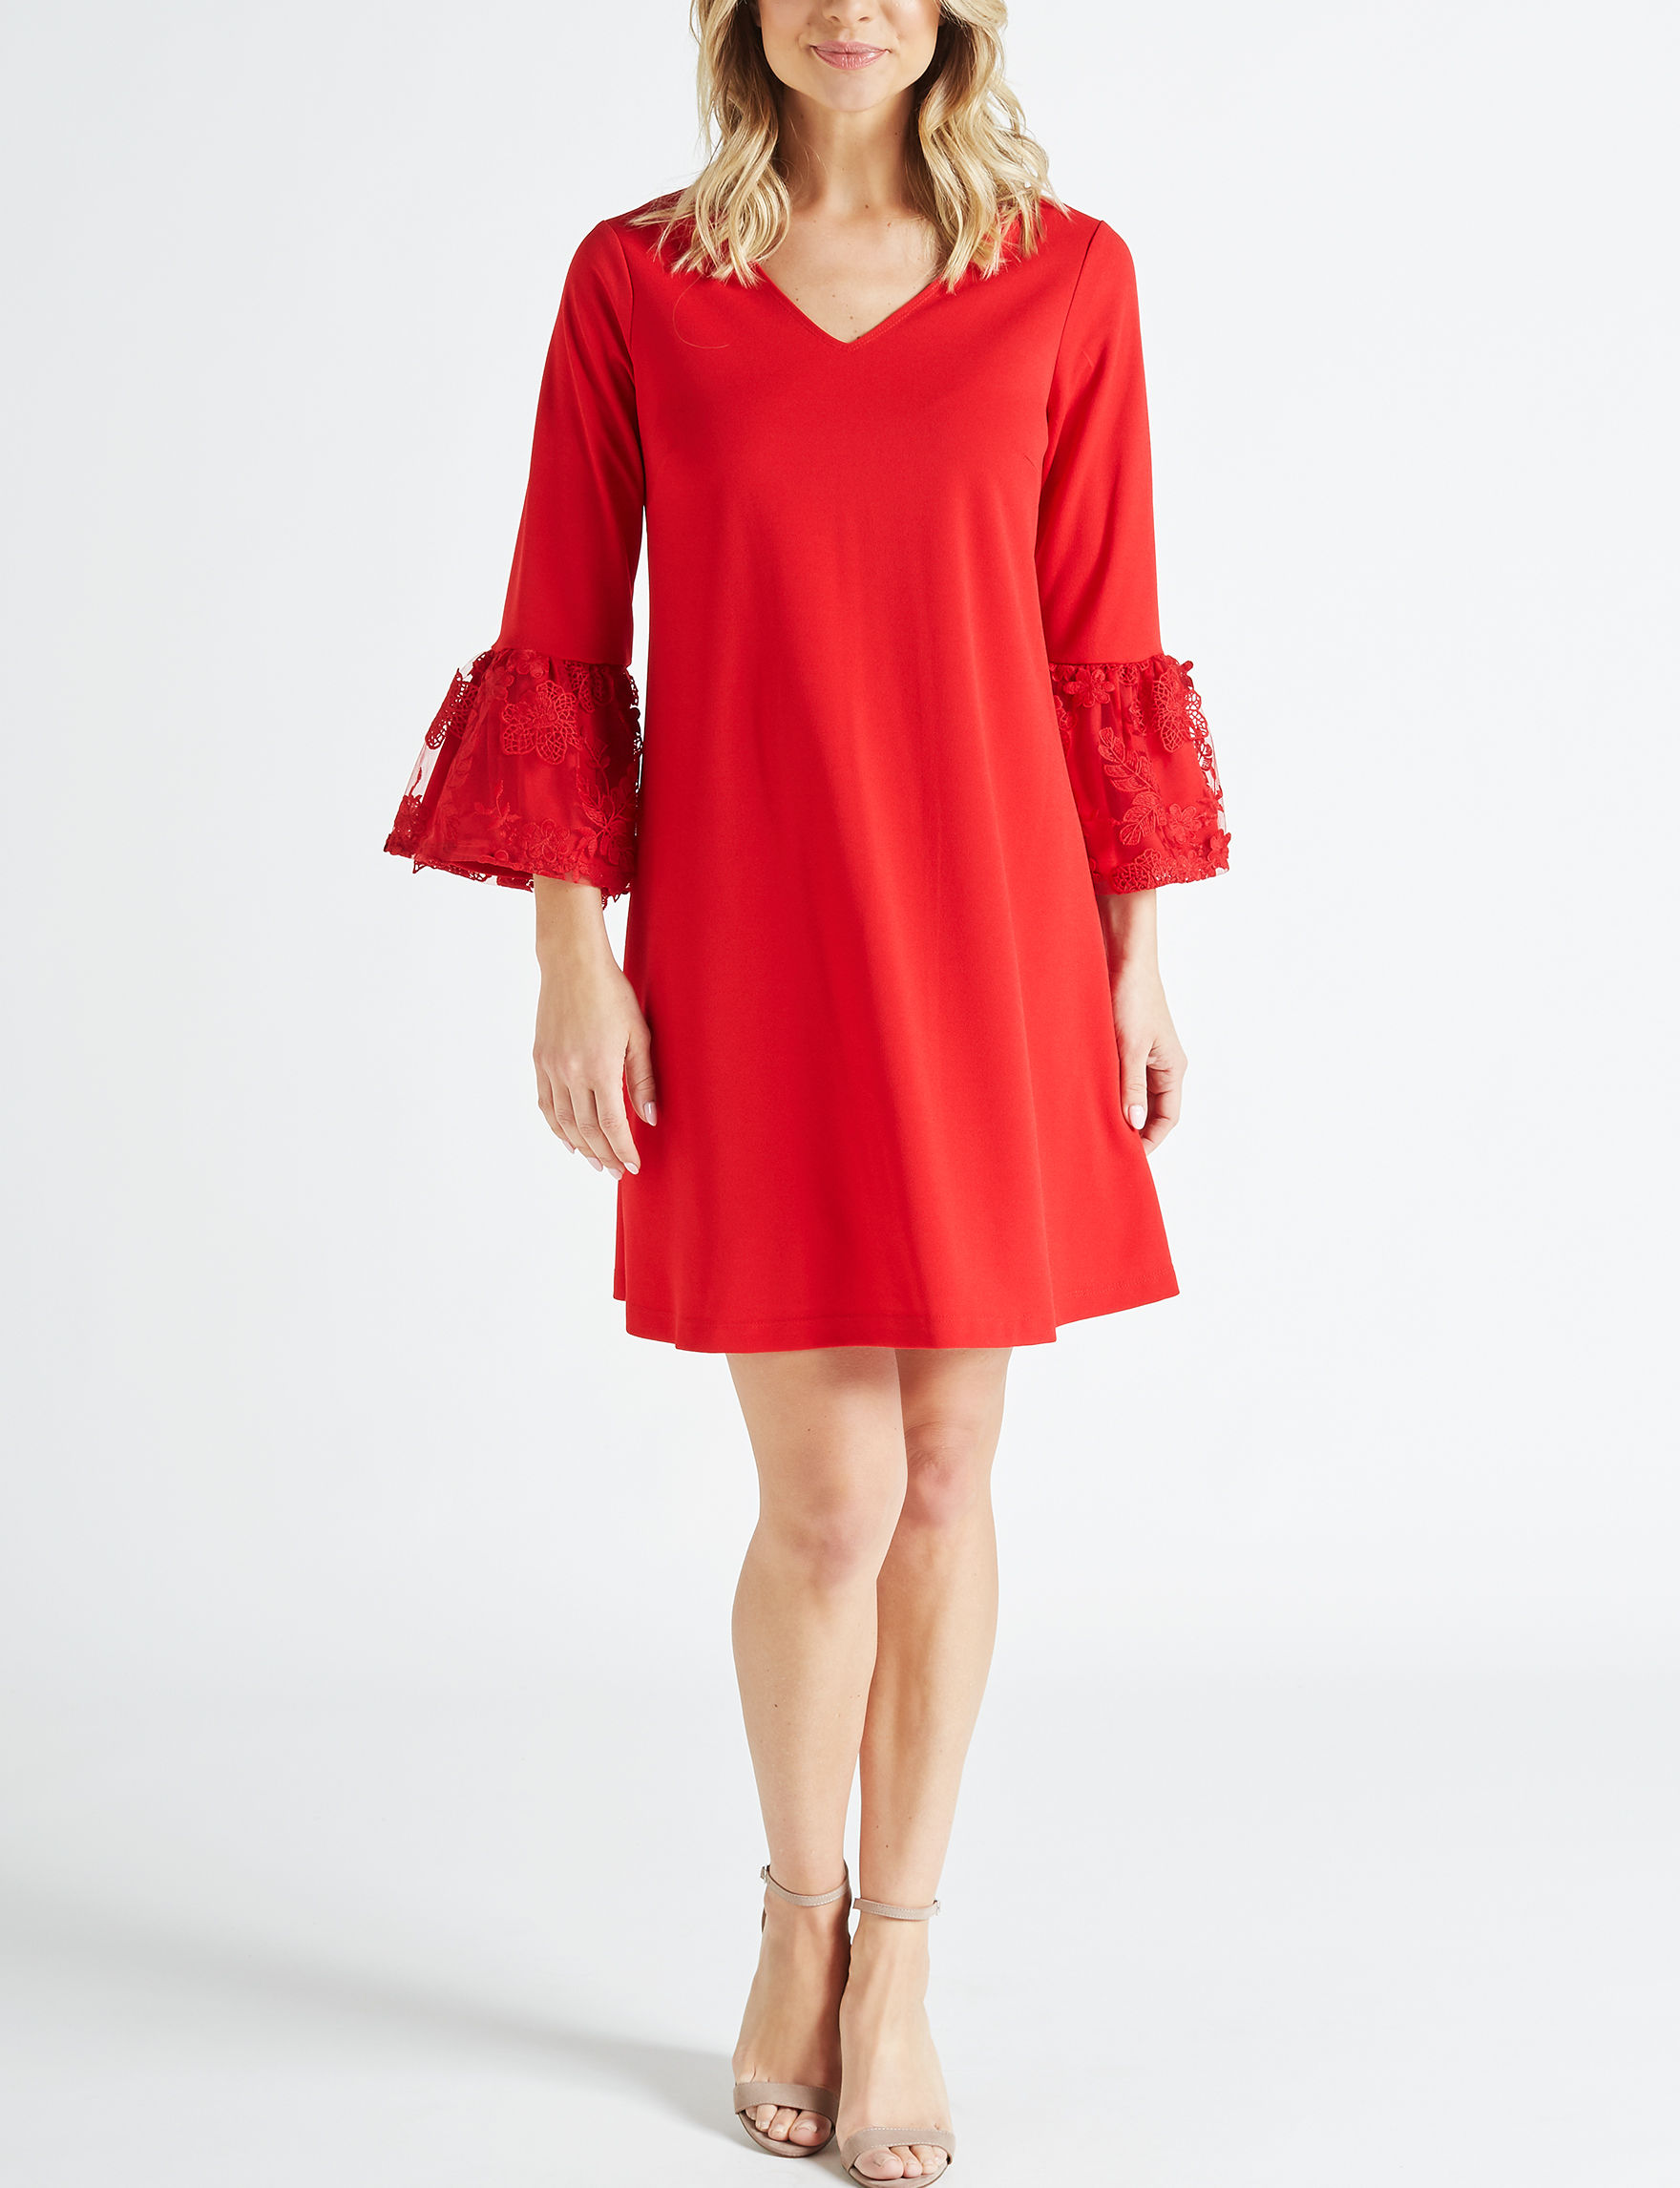 Robbie Bee Red Everyday & Casual Shift Dresses